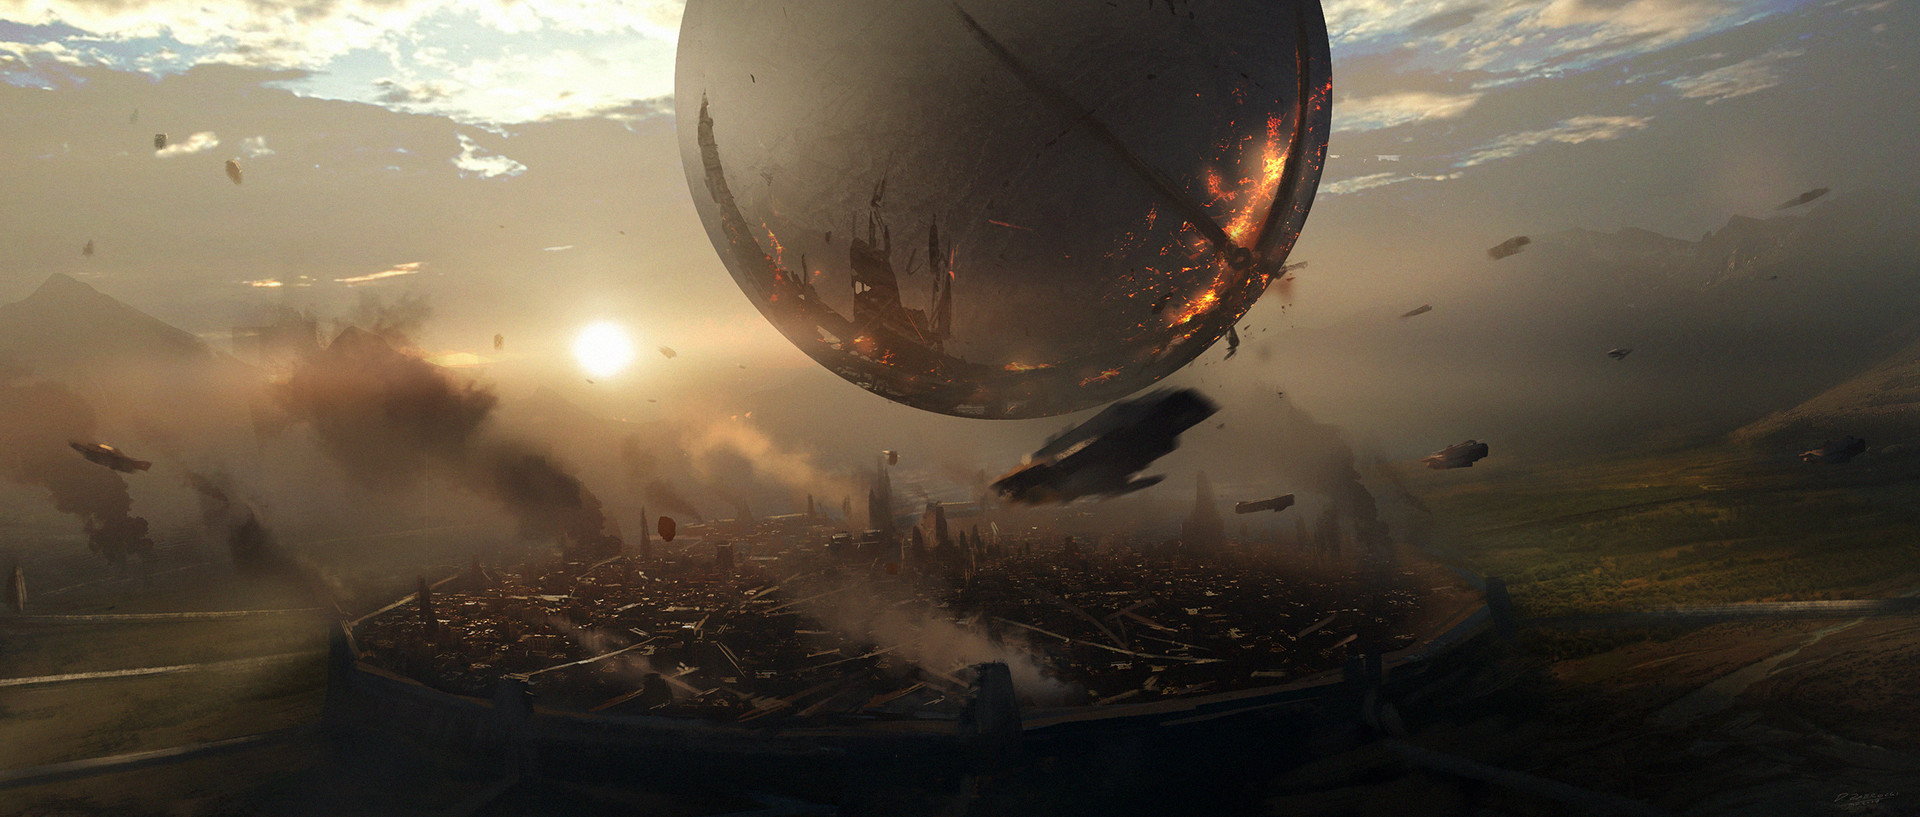 Destiny 2 Pc Wallpaper: Destiny 2: Check Out This Amazing Concept Art Ahead Of The